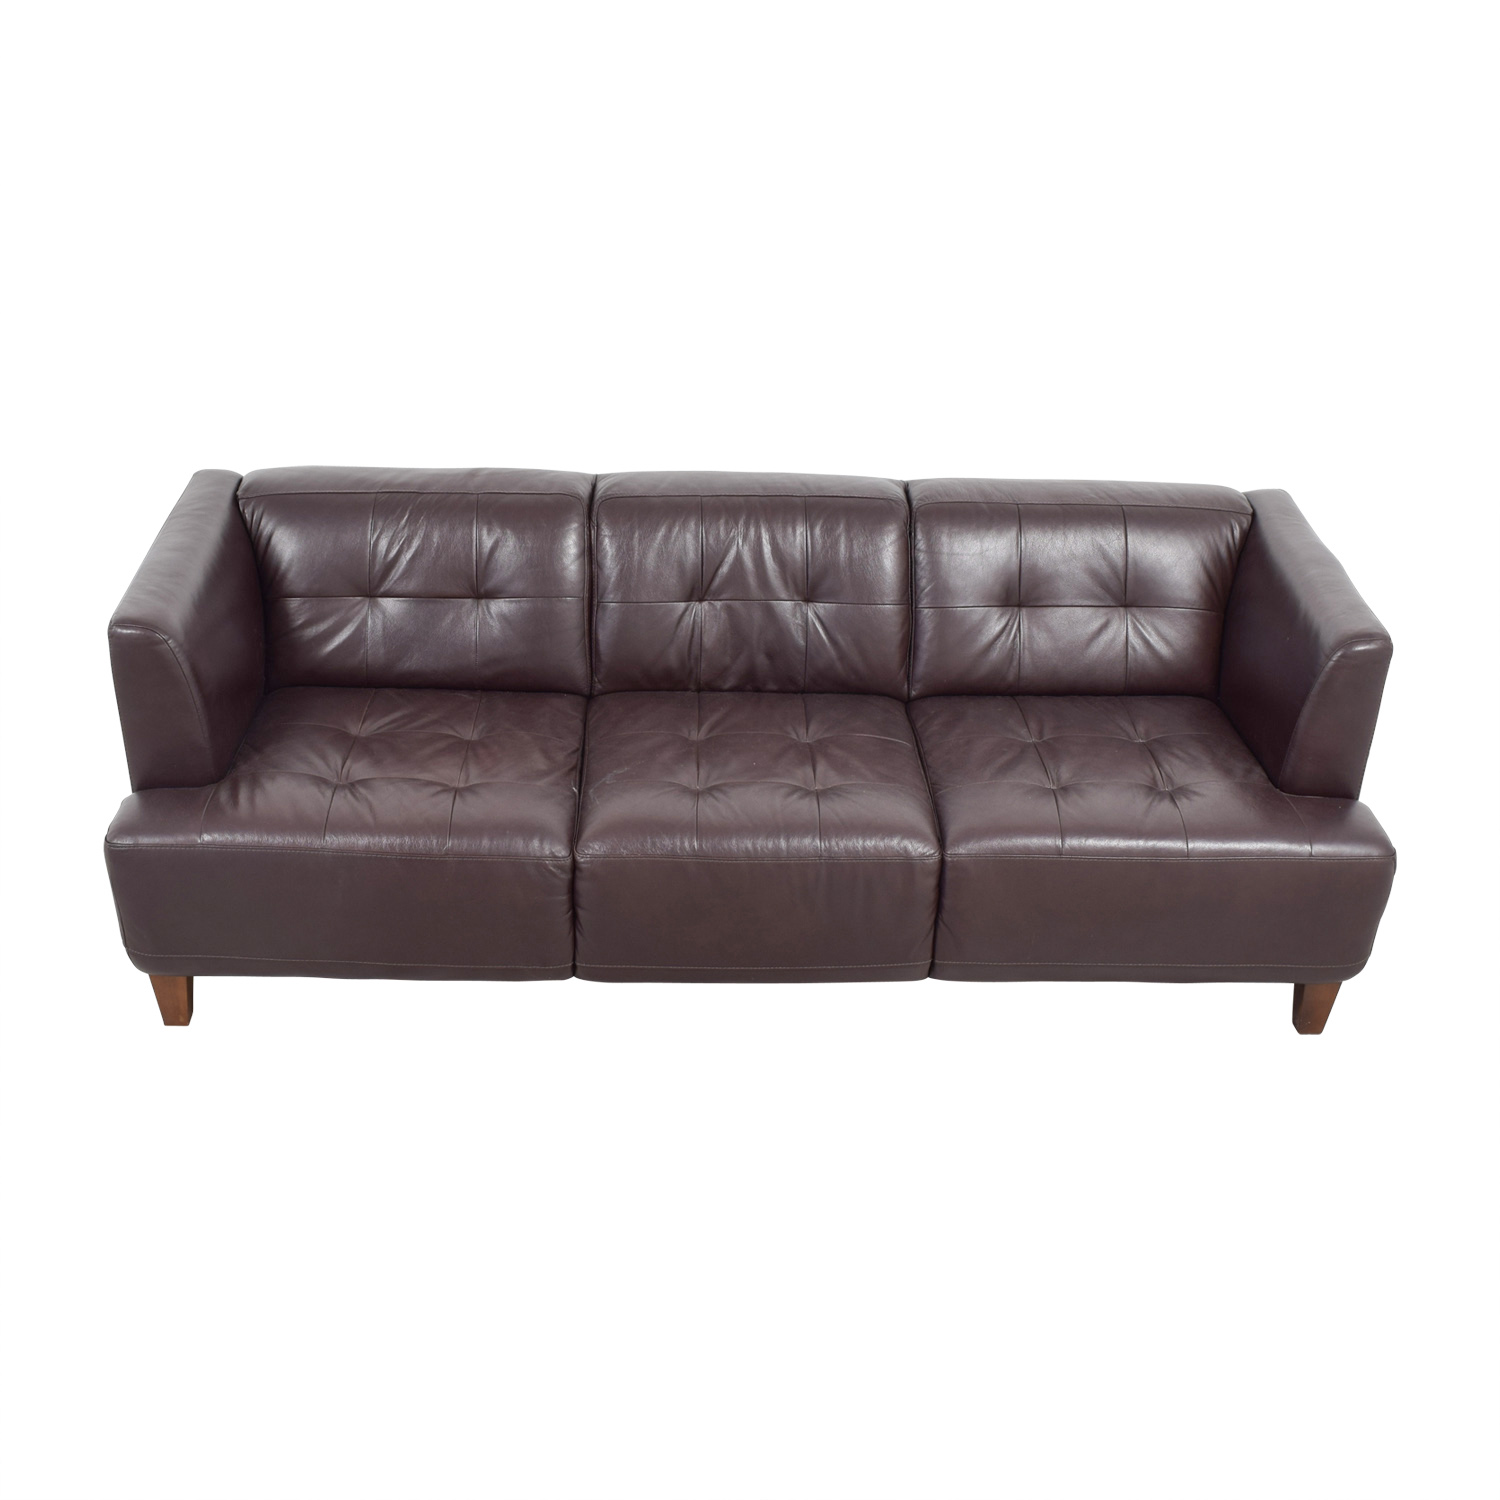 74 Off Macy S Macy S Brown Tufted Leather Couch Sofas ~ Cheap Tufted Leather Sofa